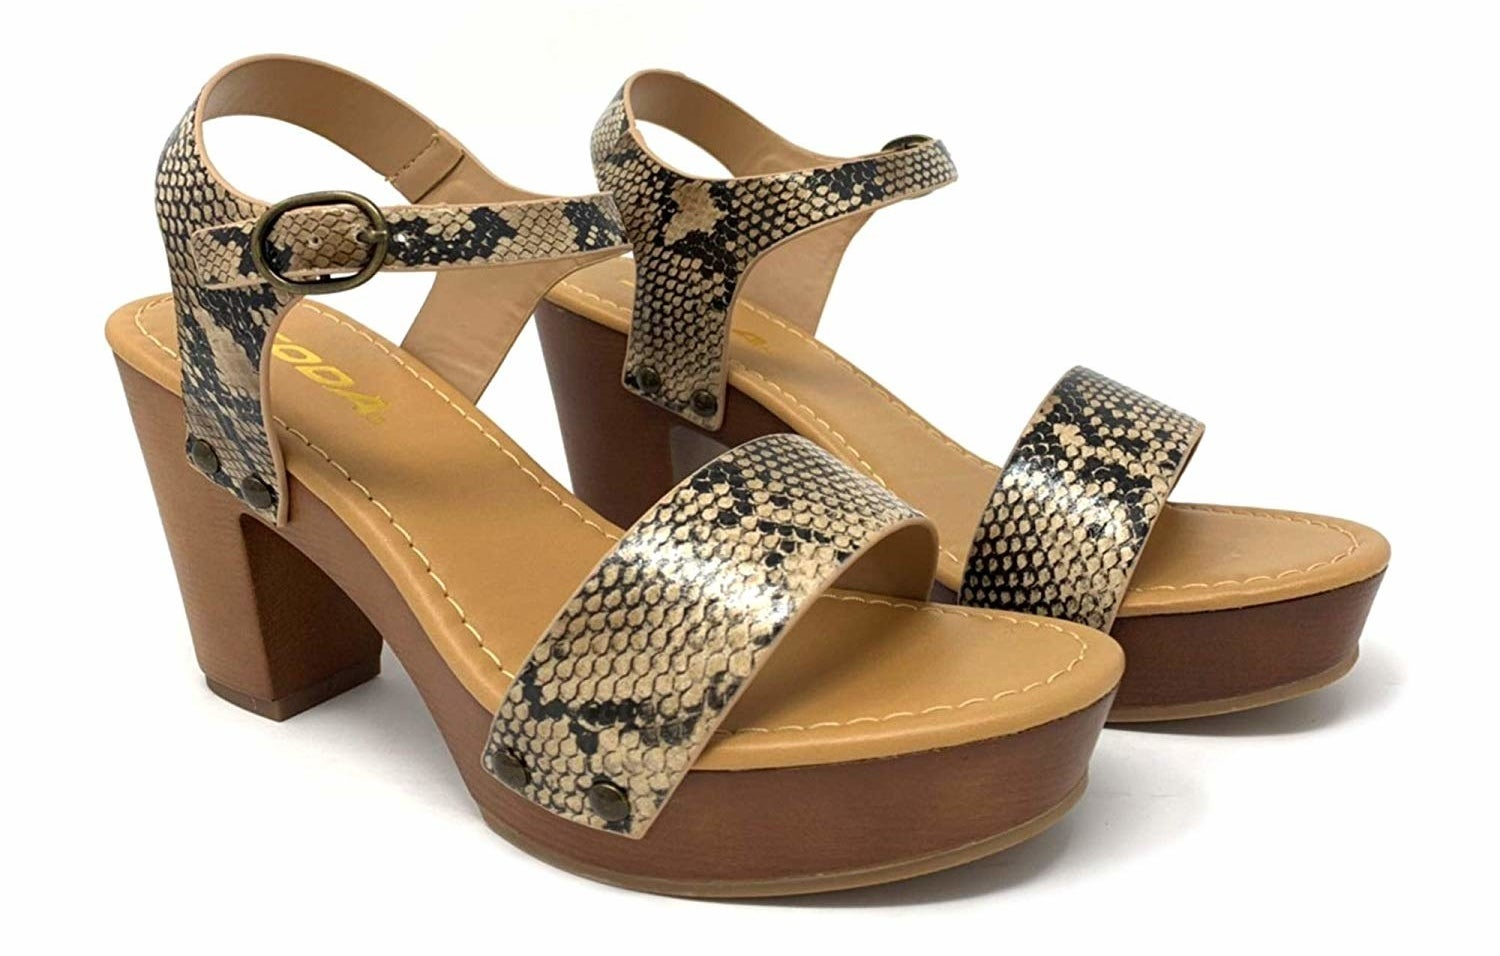 sandals in snake print